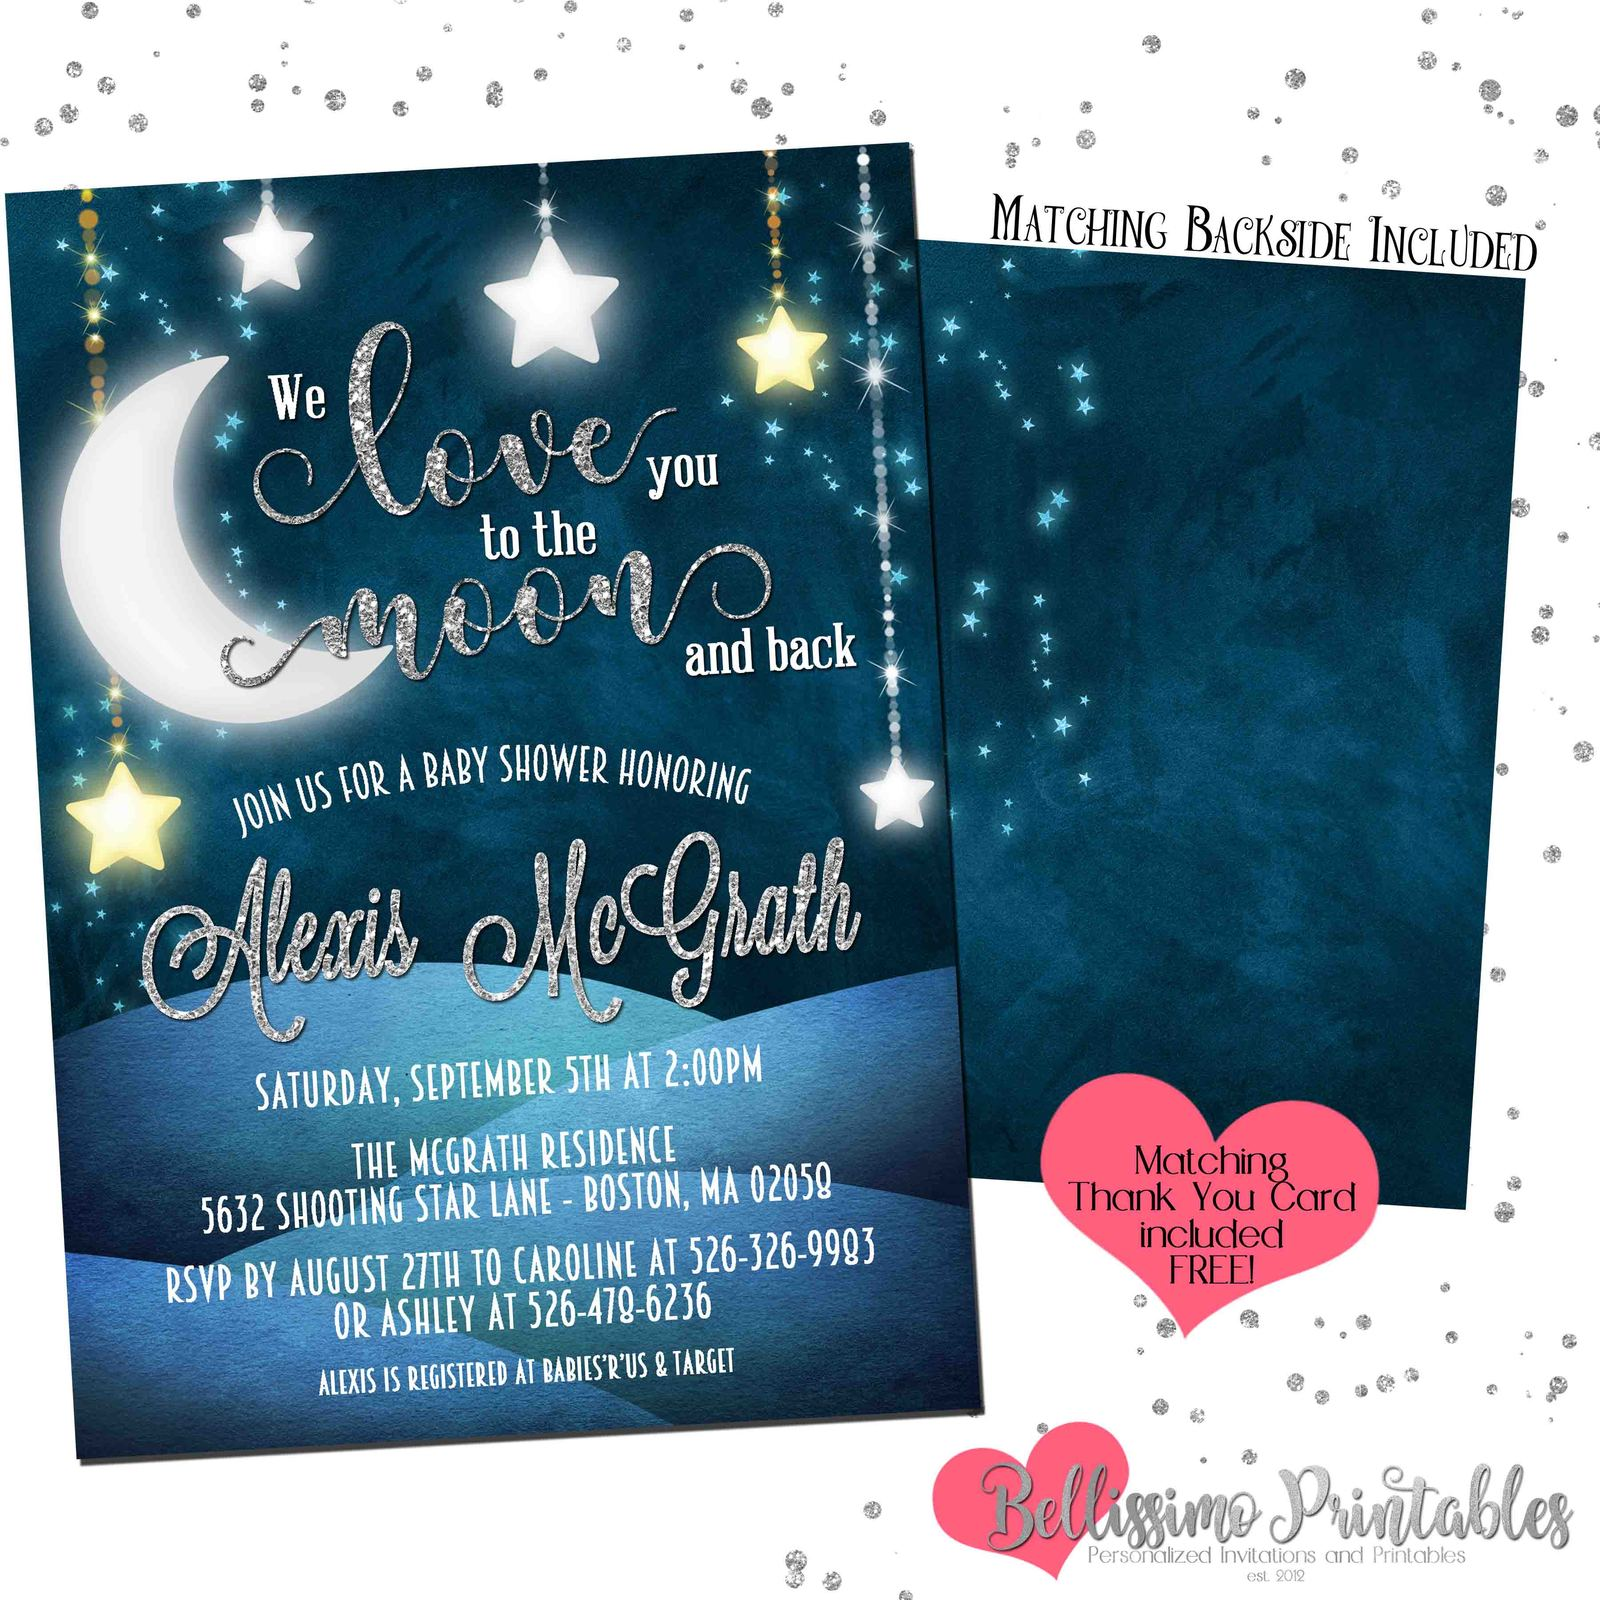 New Love You To The Moon Printable Invite: Blue Moon Wedding Invitations At Websimilar.org